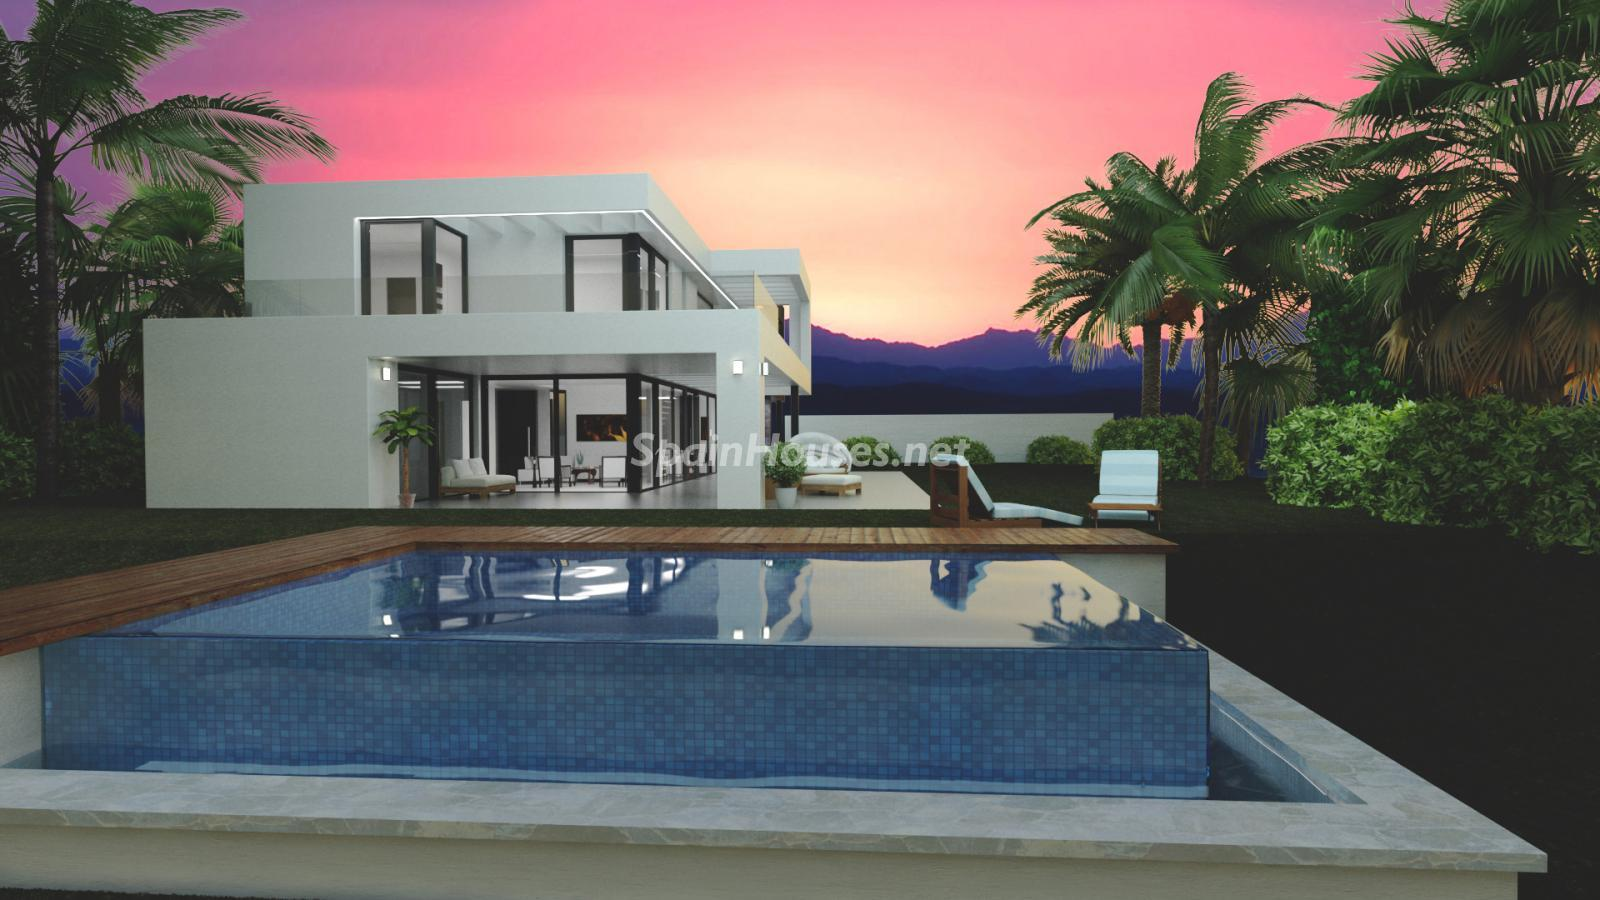 2. Buena Vista Hills - Buena Vista Hills, 26 Modern Villas with Panoramic Sea Views in Mijas, Costa del Sol